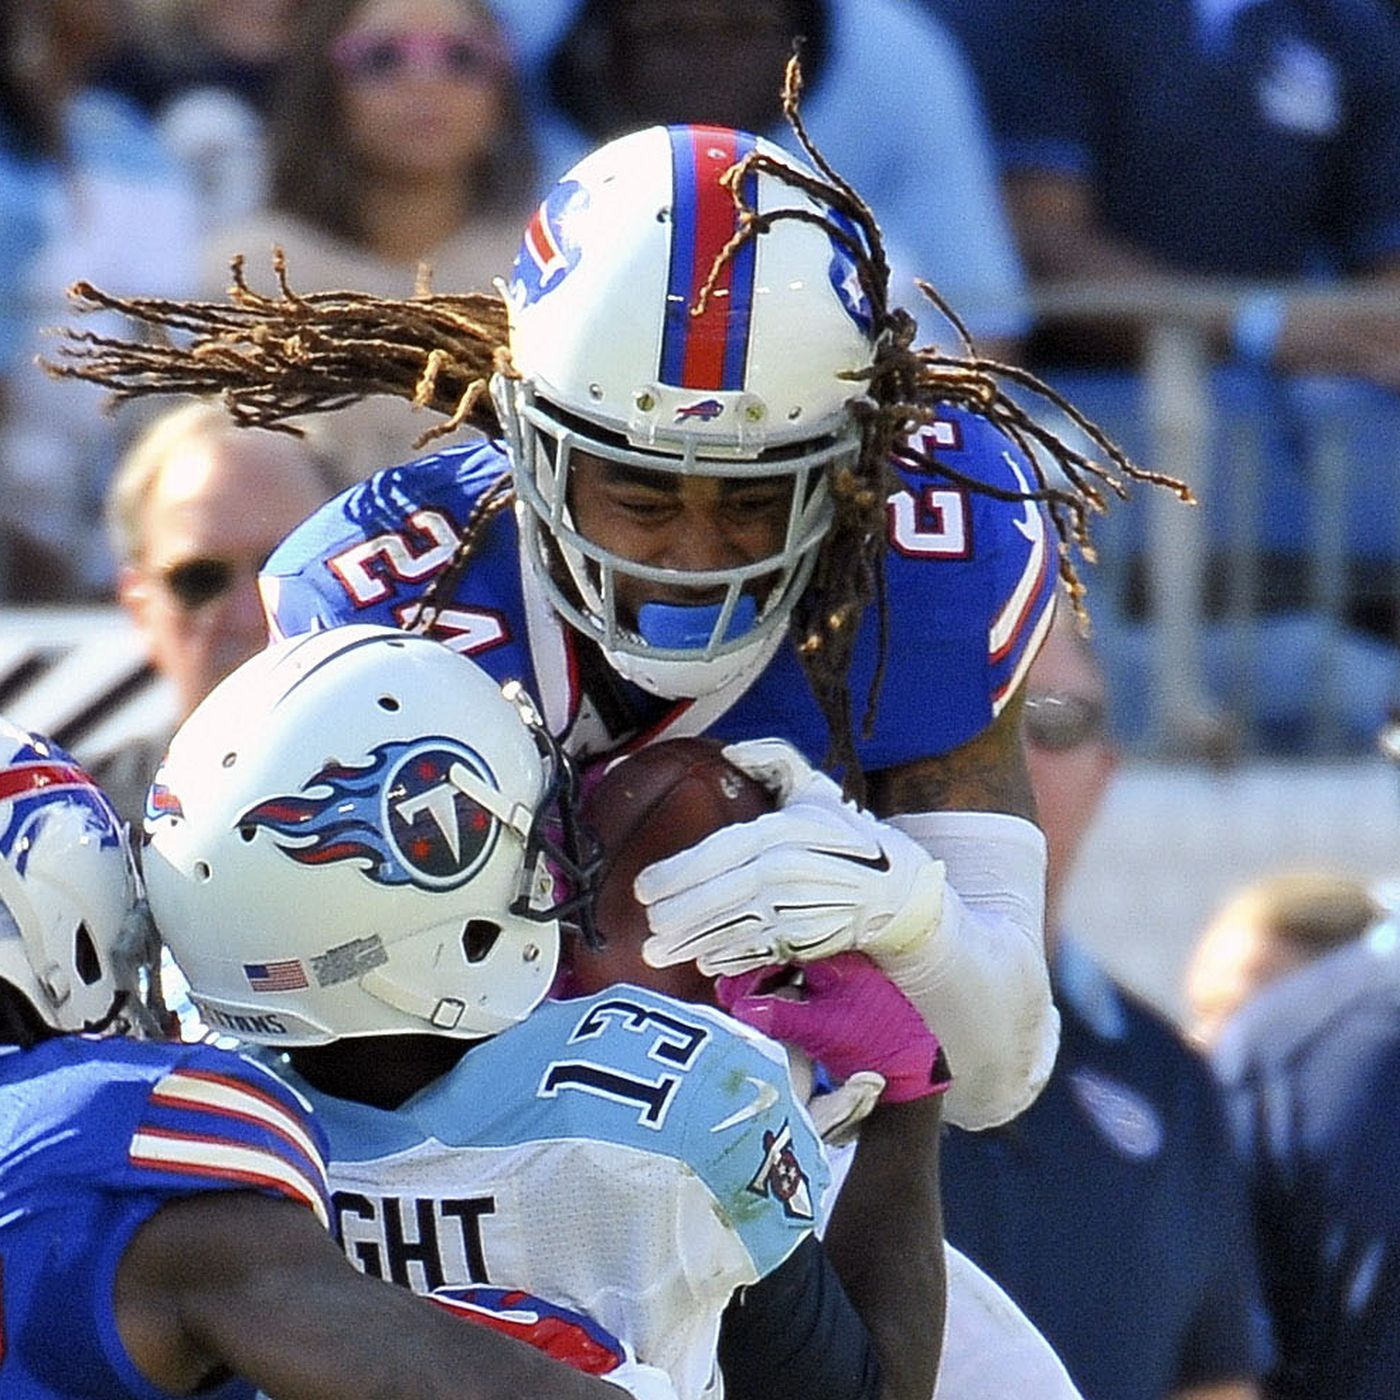 df3a802a4f5 Stephon Gilmore injury  torn labrum lands Bills CB on IR - Buffalo Rumblings